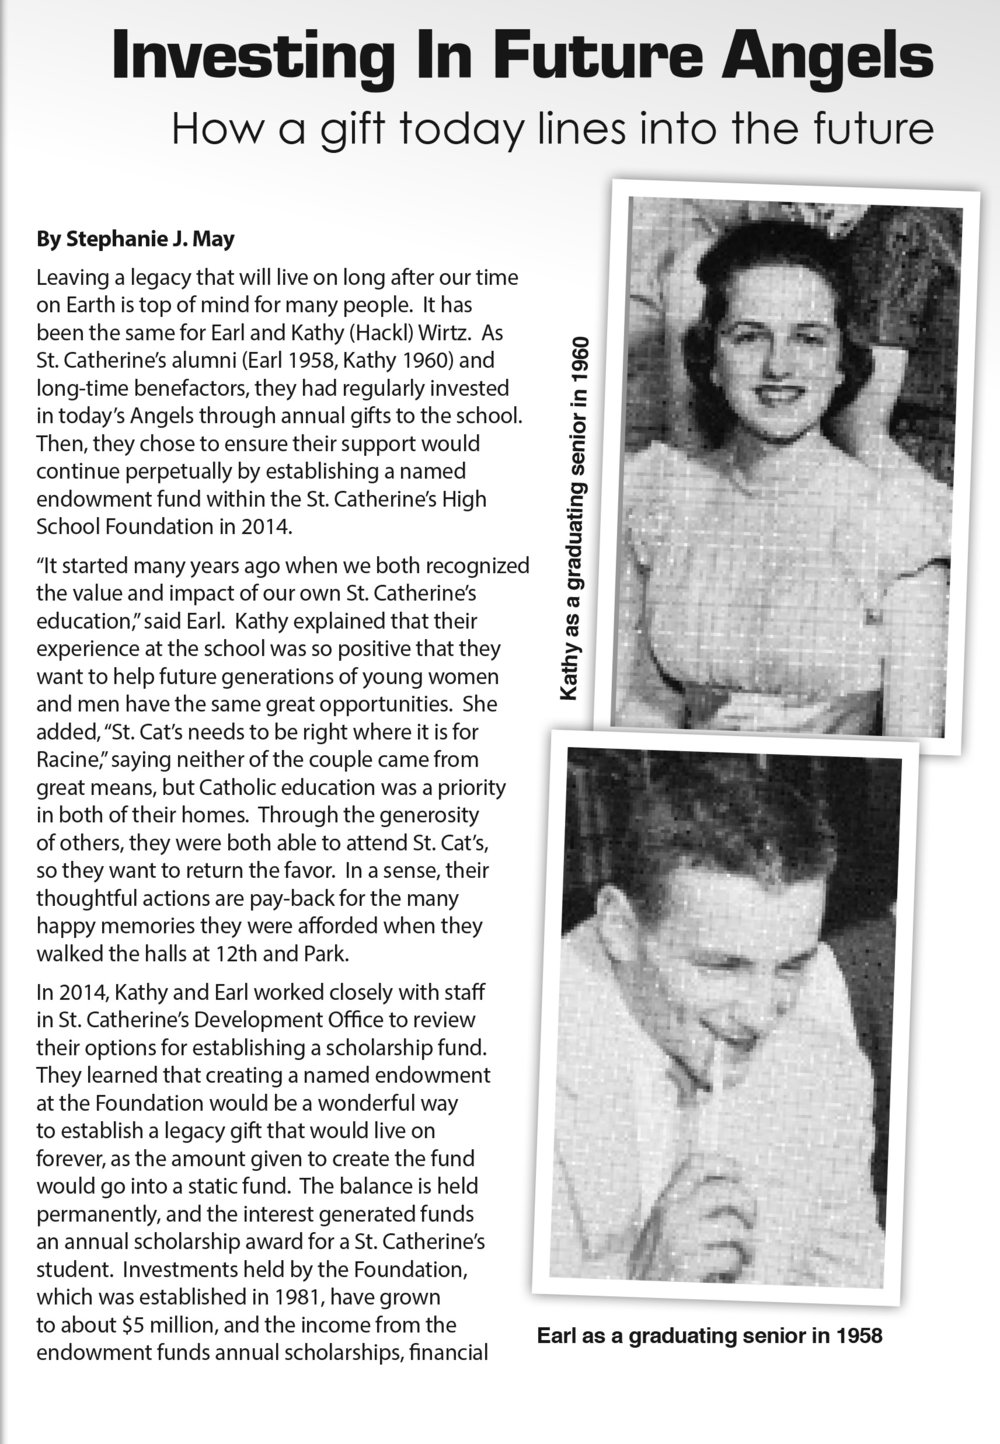 """It started many years ago when we both recognized the value and impact of our own St. Catherine's education"" Mr. Earl Wirtz, Class of 1958  Click the image to read the full story in the May Luminary."